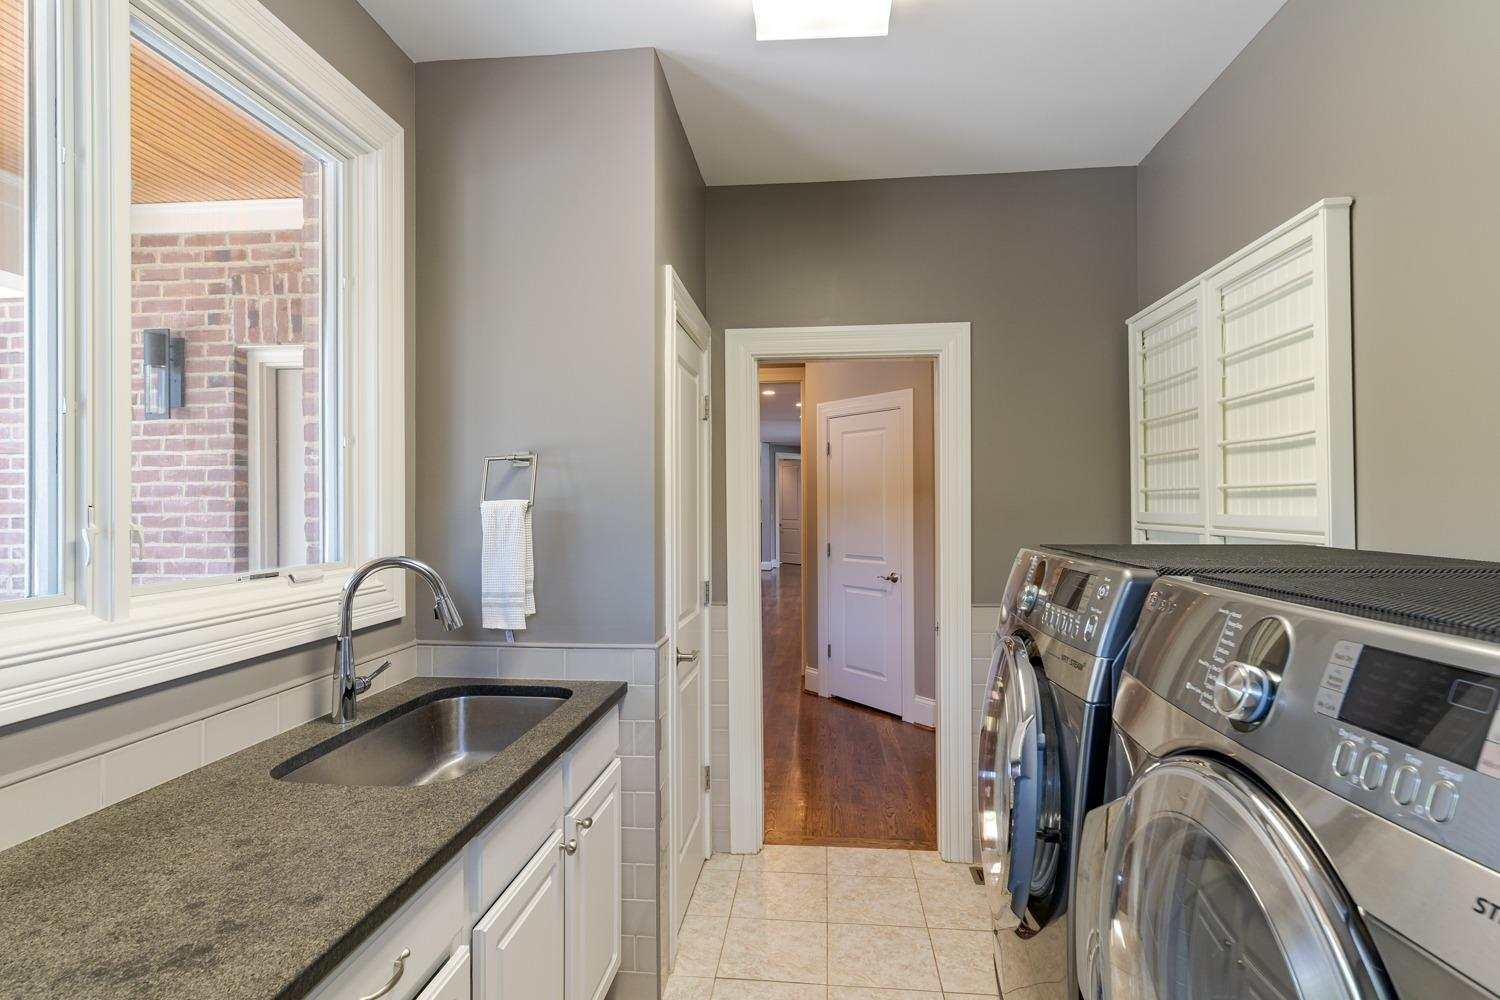 Laundry located on first floor with ample counter space, supply closet, and retractable drying rack.